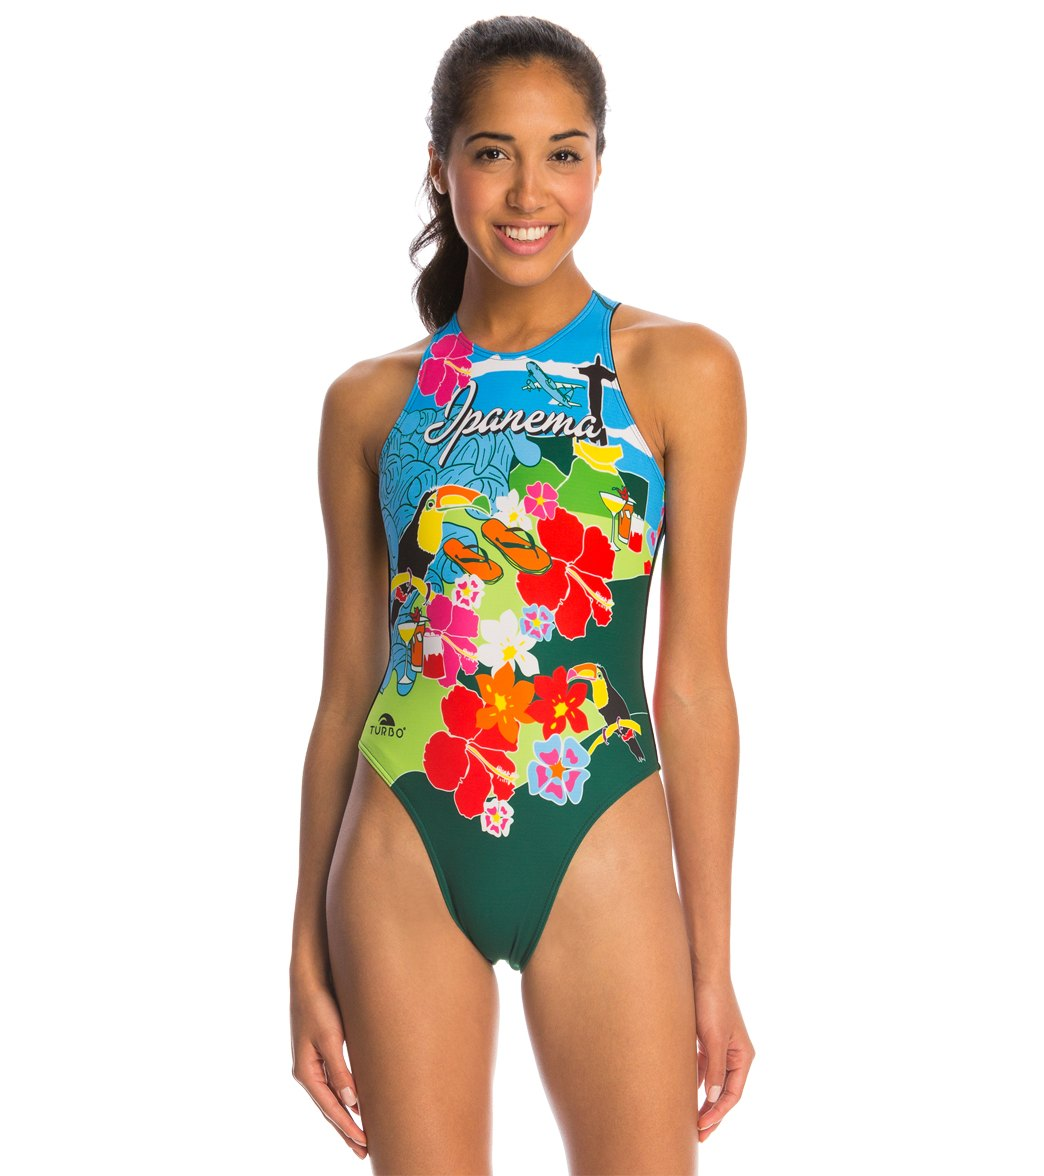 0a4518863ae31 Turbo Women s Rio Water Polo Suit at SwimOutlet.com - Free Shipping